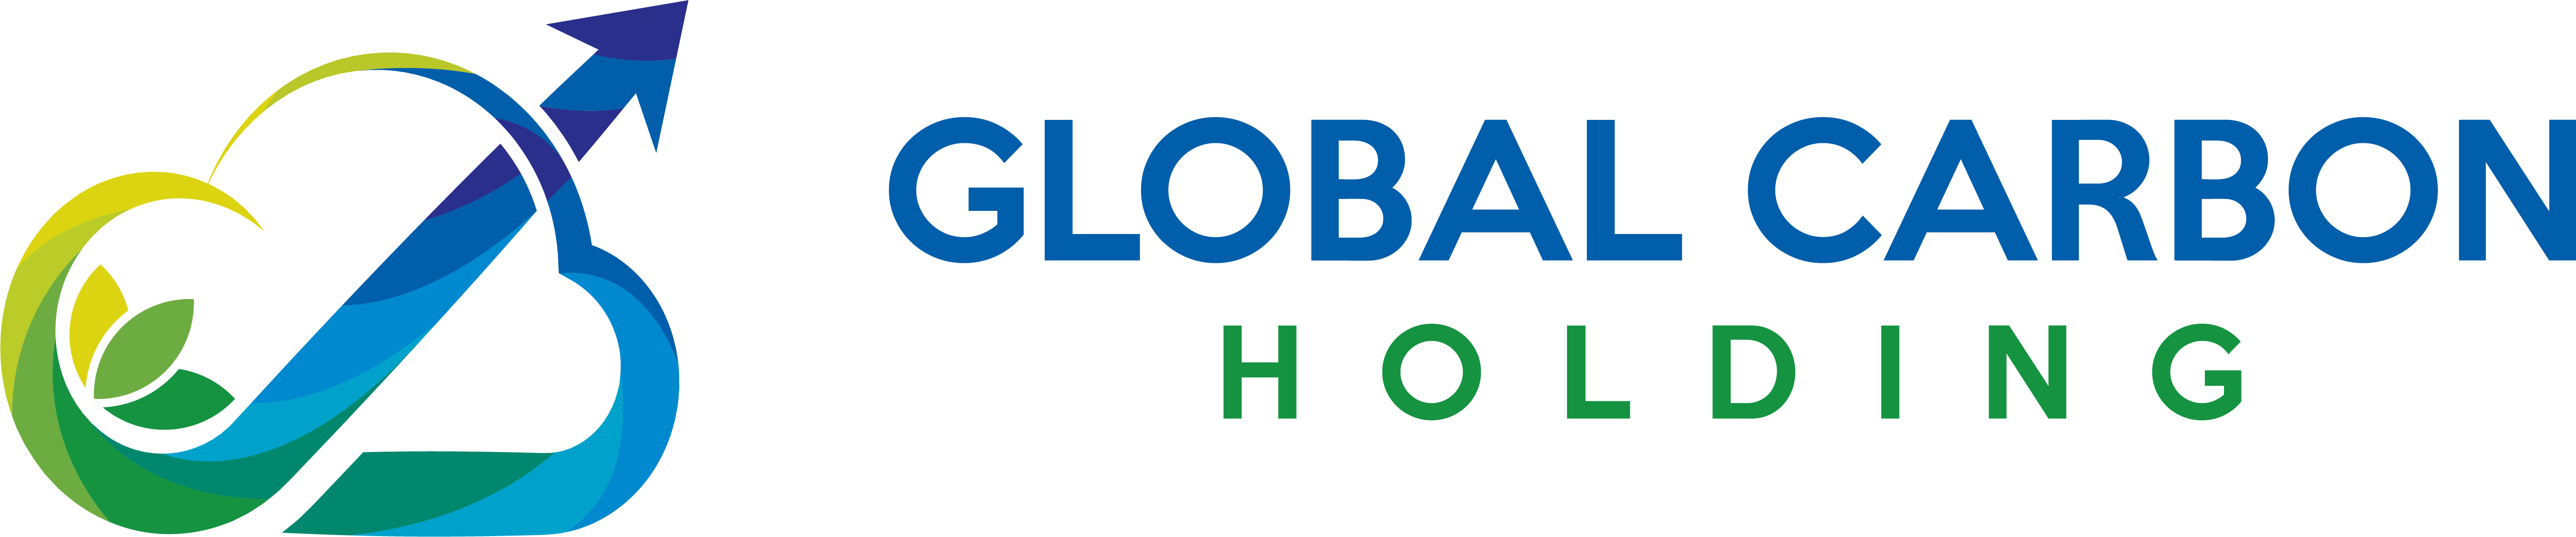 Global Carbon Holding Logo